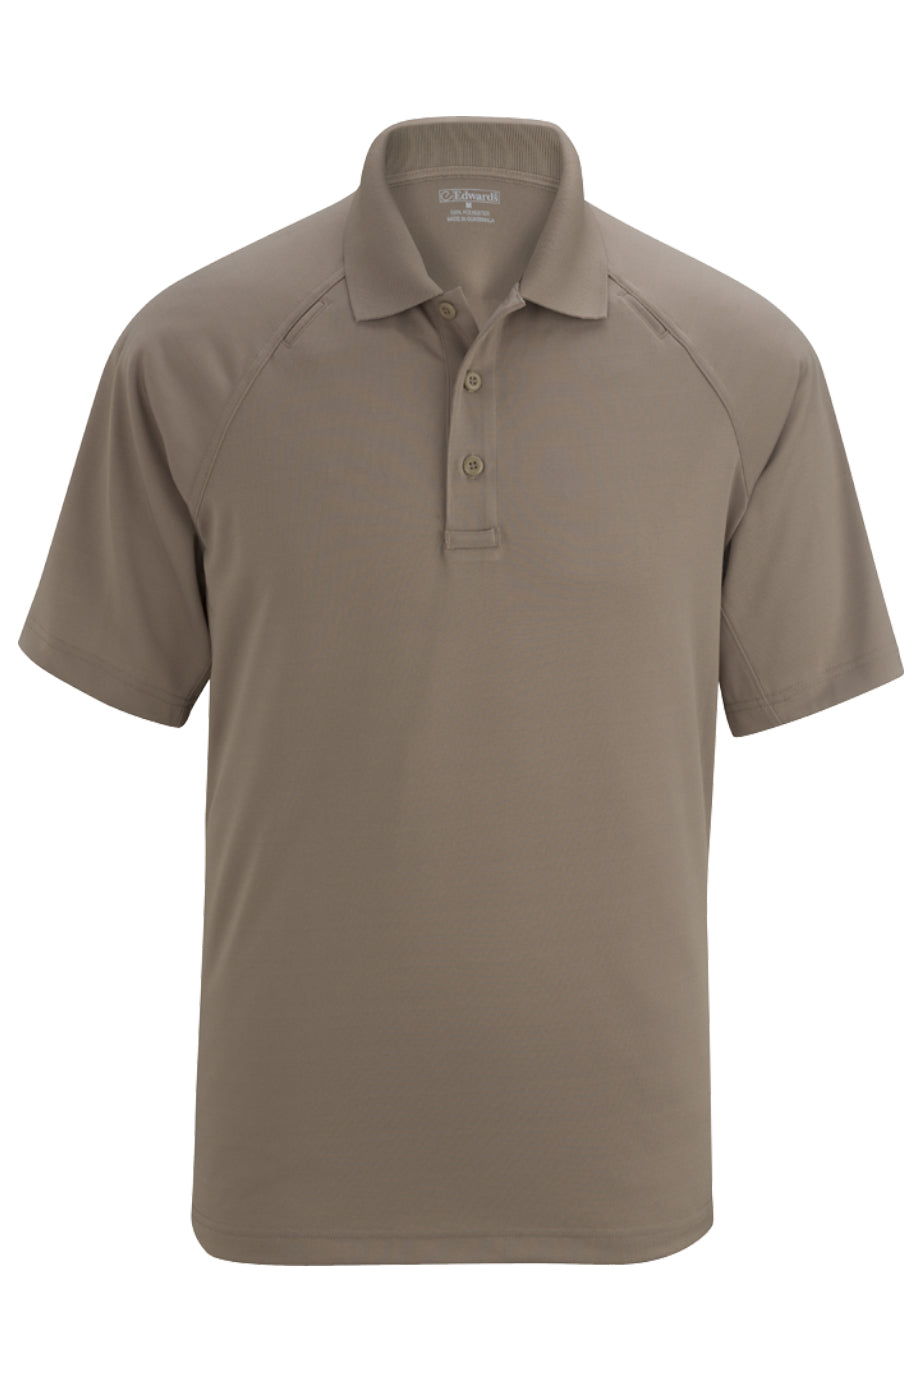 Silver Tan Edwards Mens Snag-Proof Short Sleeve Polo